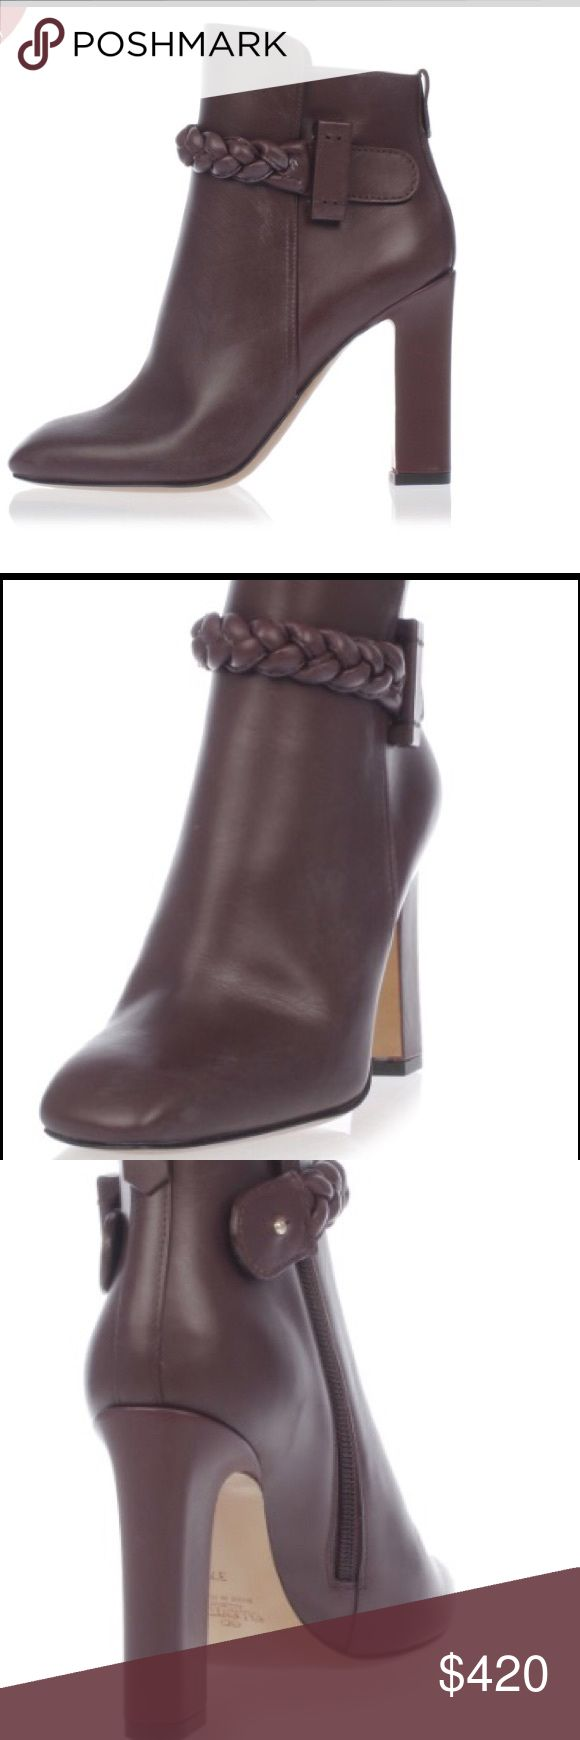 Brand new in box Valentino booties Amazing and NIB Valentino booties. Have sizes 39,40,41. Very quick sale, immediate dispatch from Europe Valentino Shoes Ankle Boots & Booties